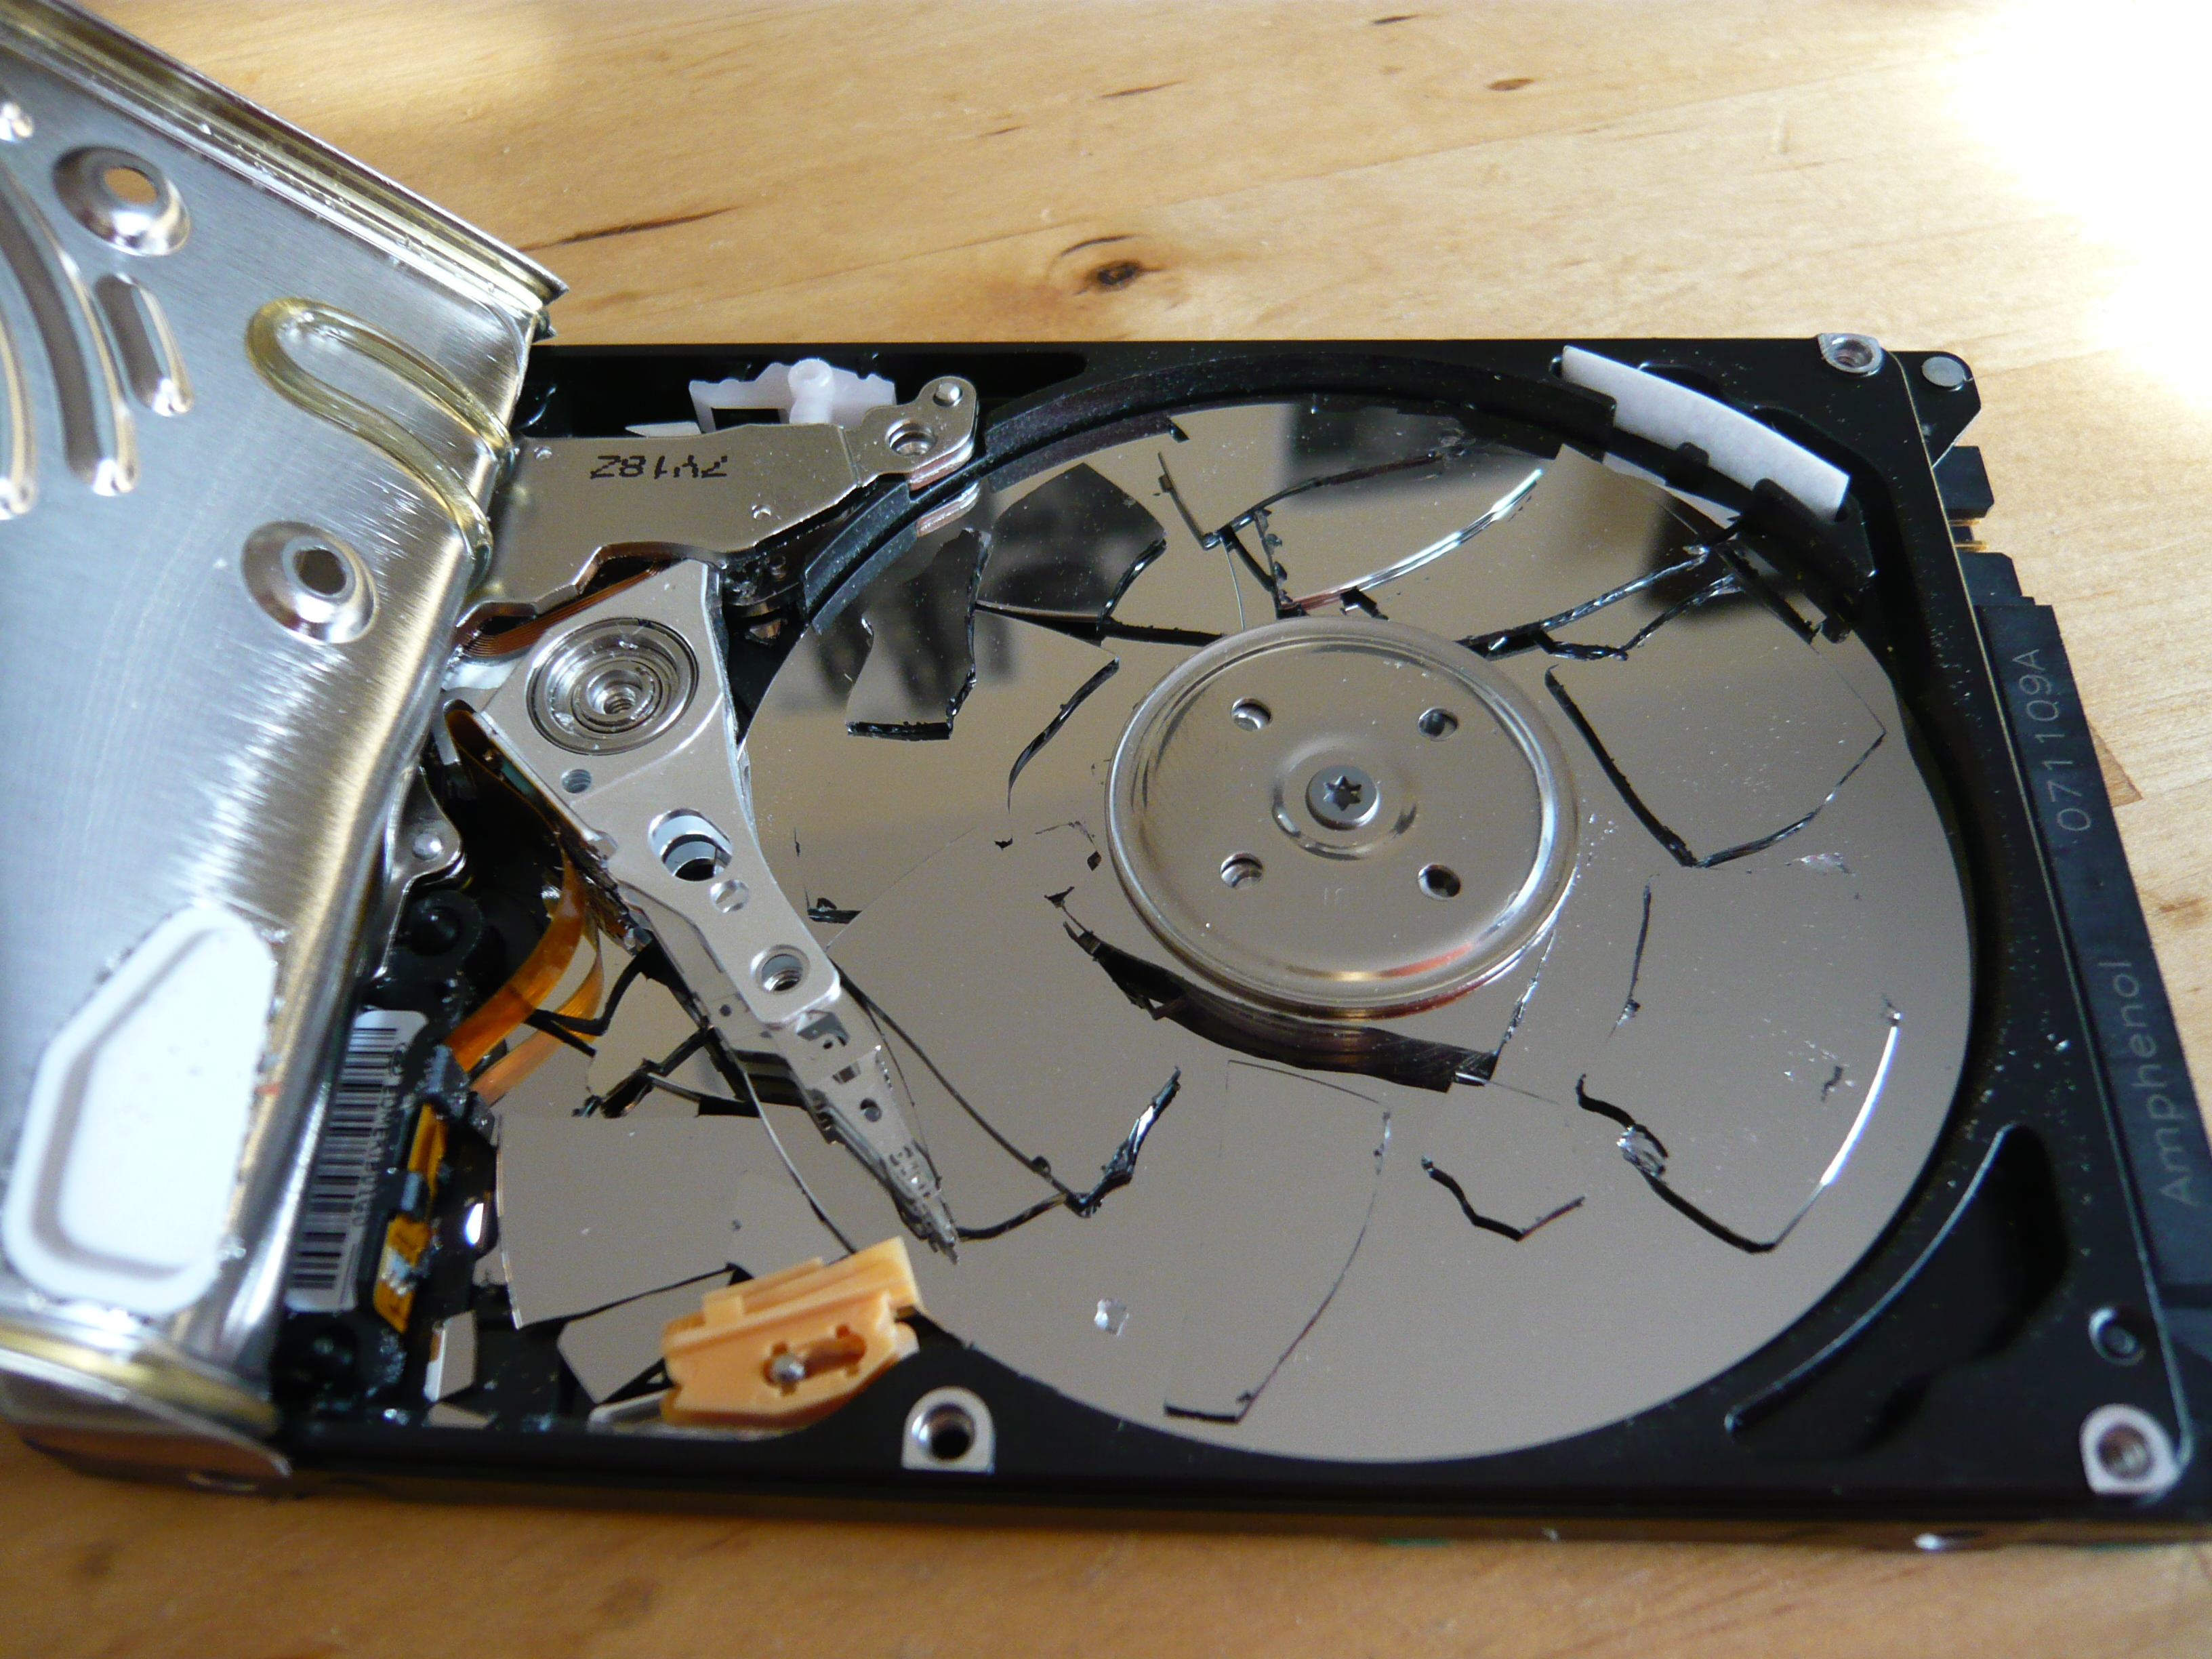 File:WD-Scorpio Crashed HDD.jpg - Wikimedia Commons